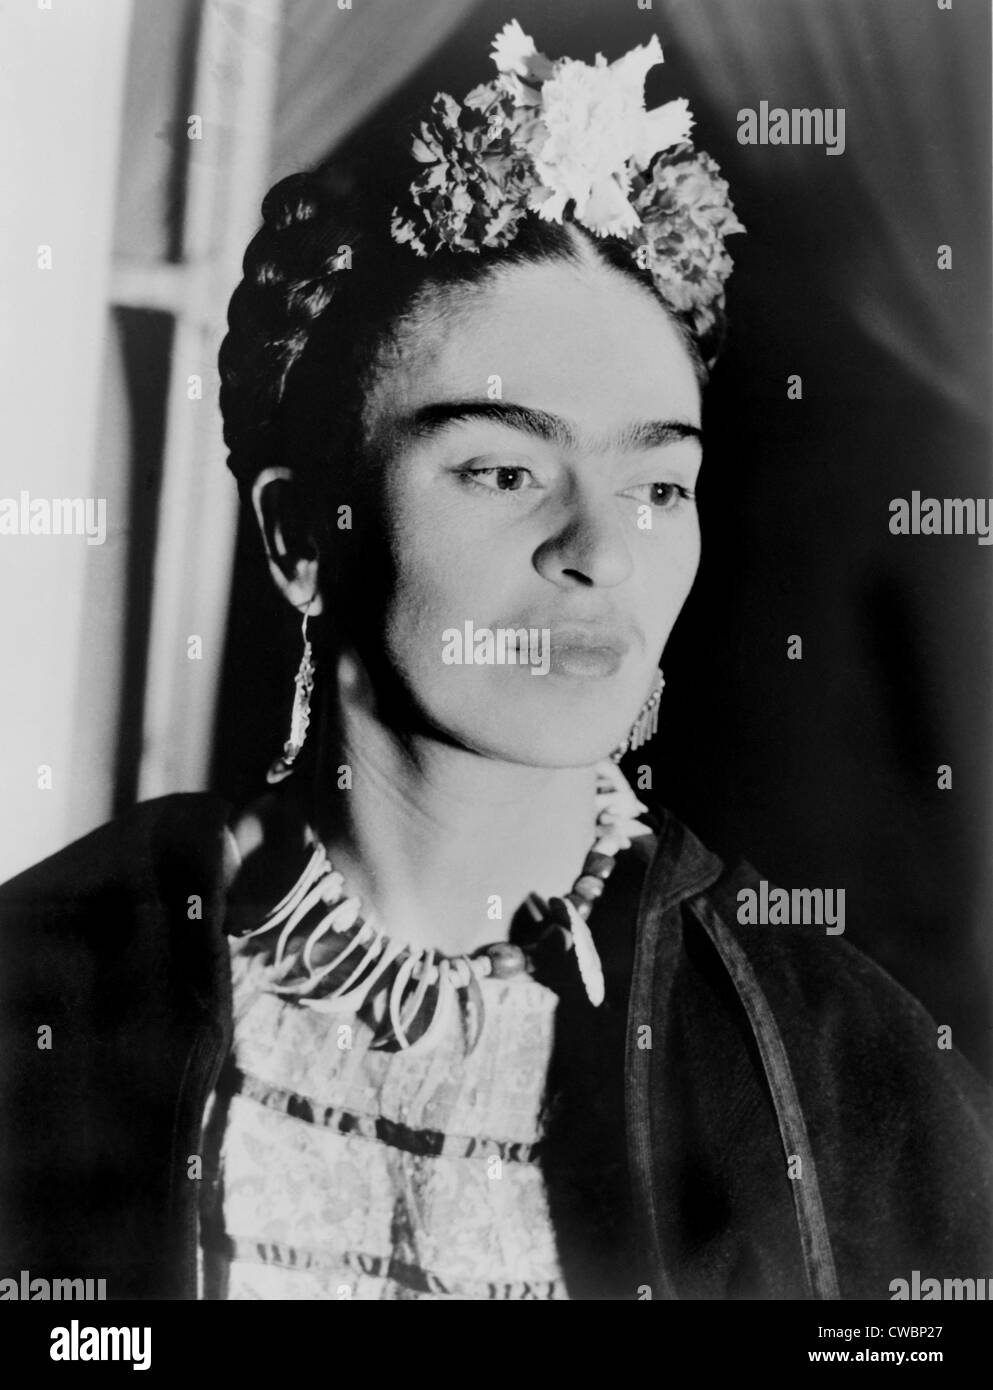 frida kahlo and surrealism Allow your class to compare the works of surrealist artists and kahlo to decide if kahlo's work can be considered surrealist.